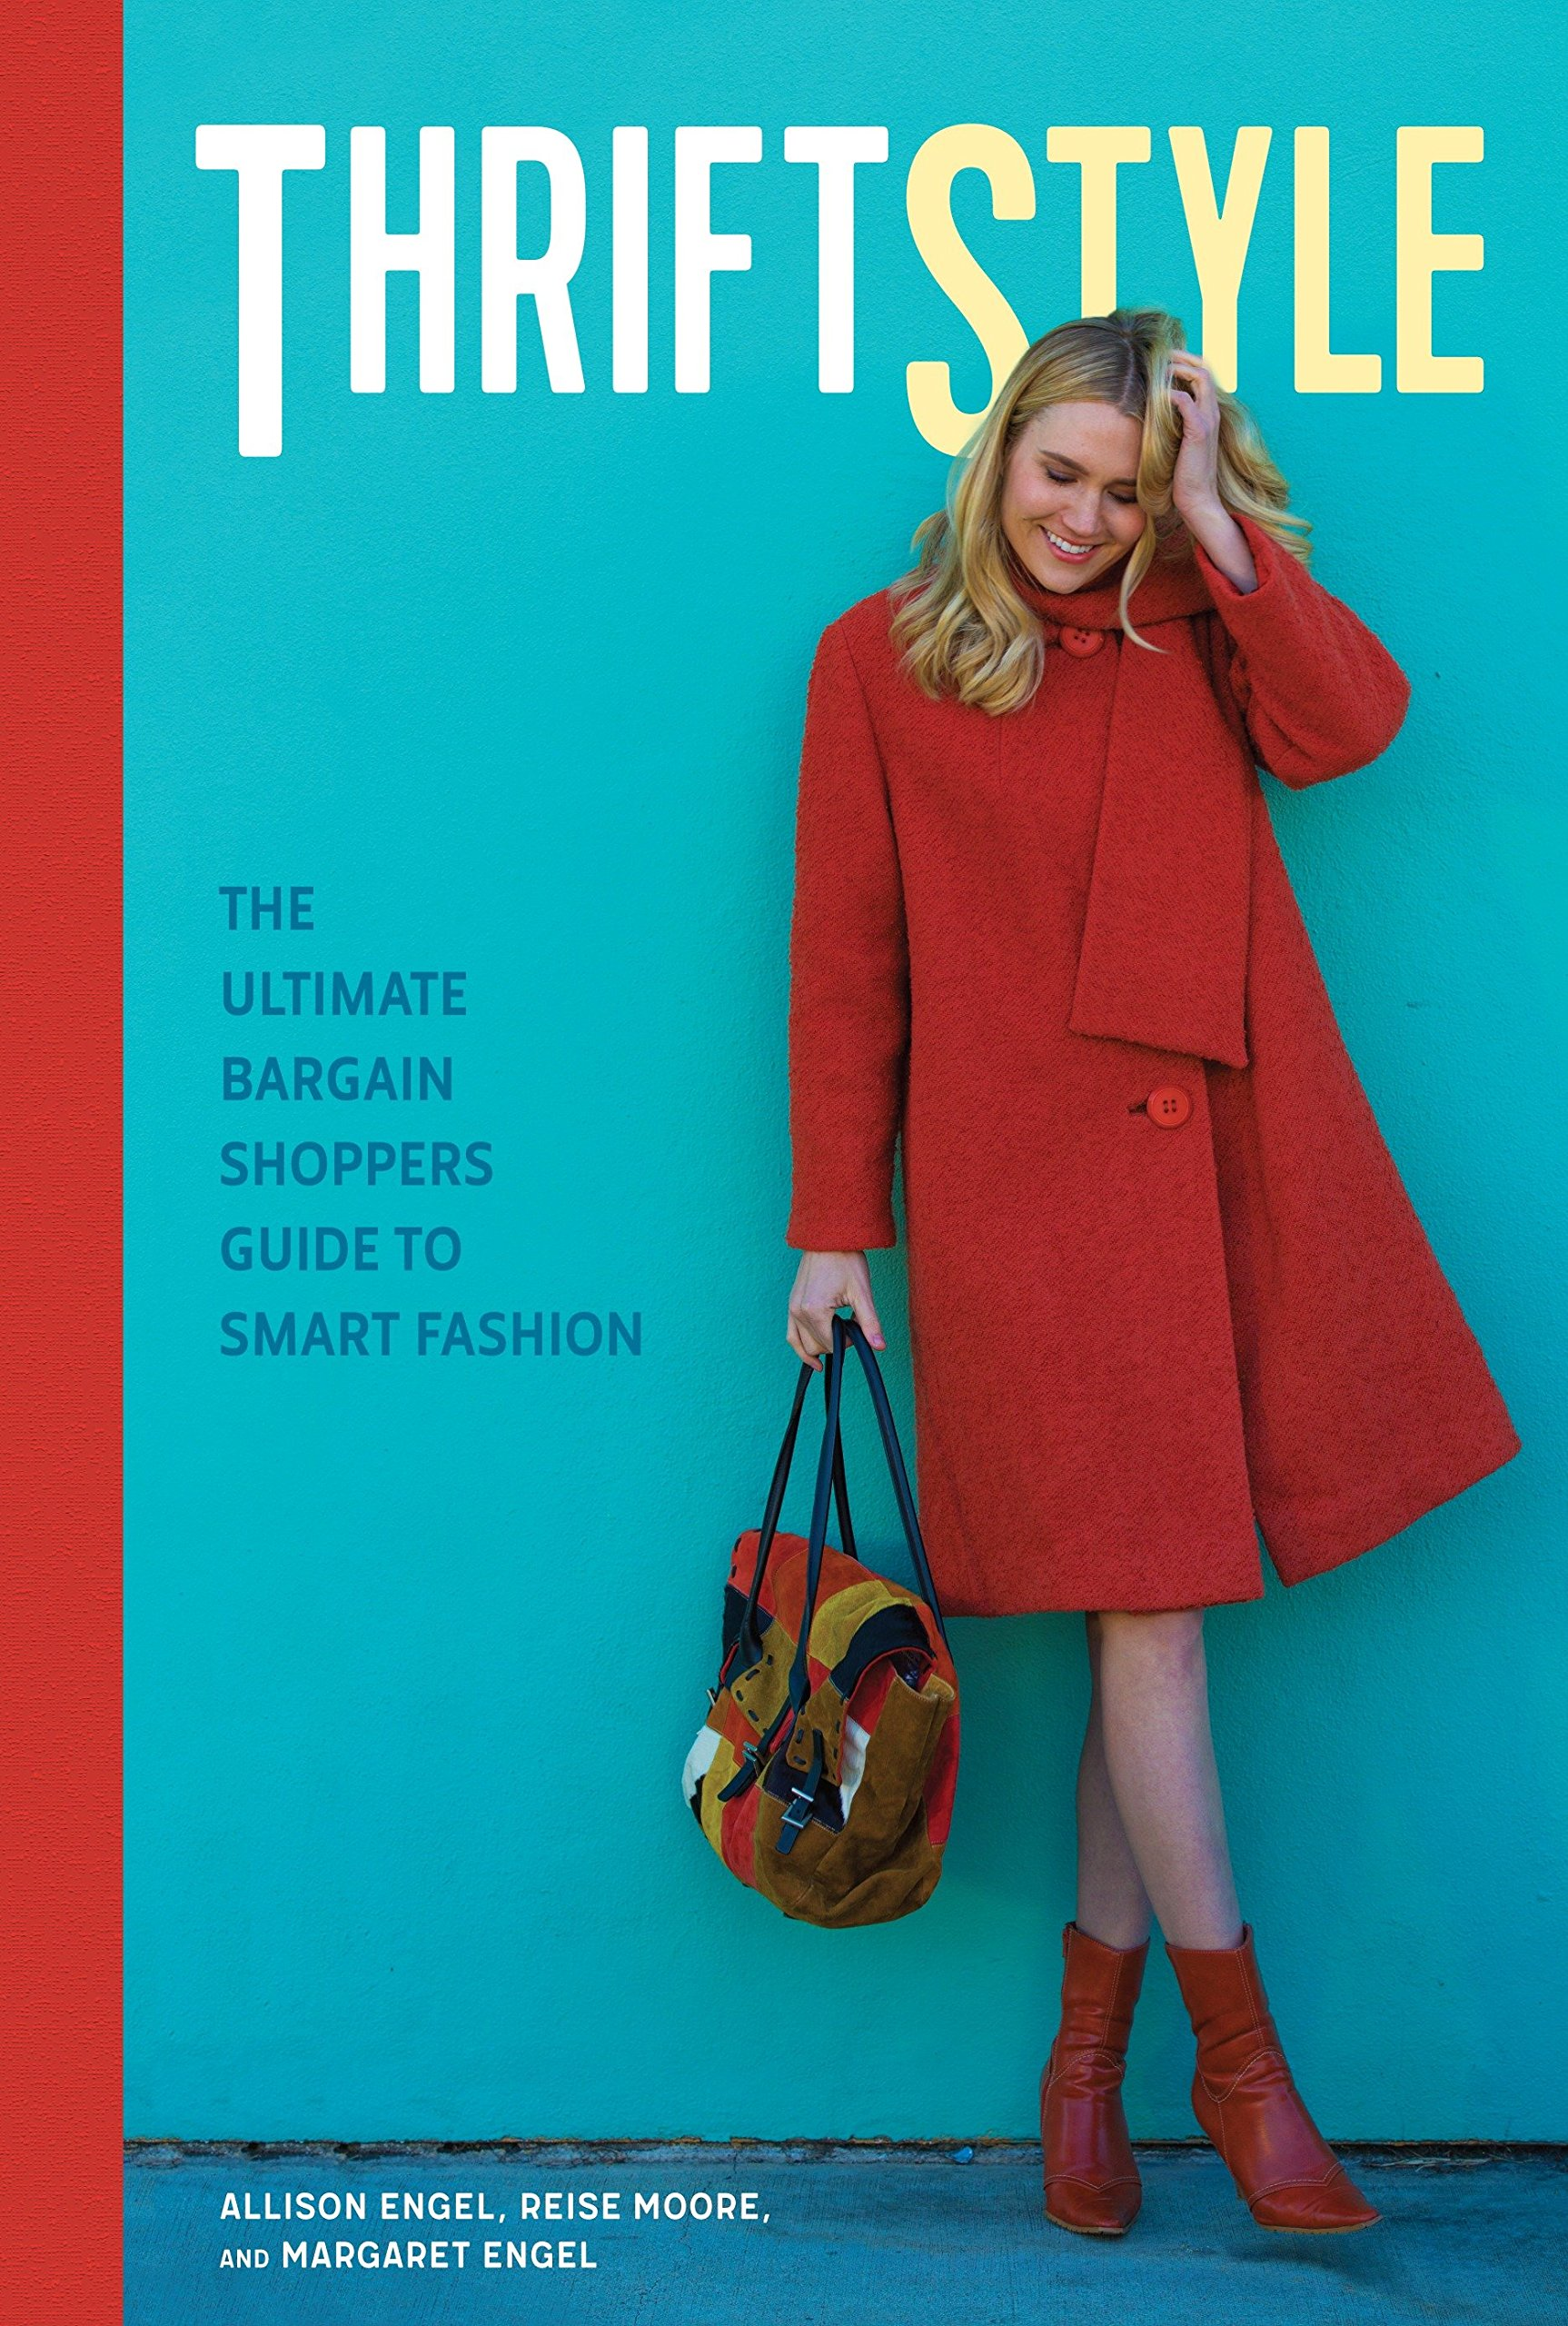 65c8d3dd9d ThriftStyle: The Ultimate Bargain Shopper's Guide to Smart Fashion  Paperback – September 5, 2017